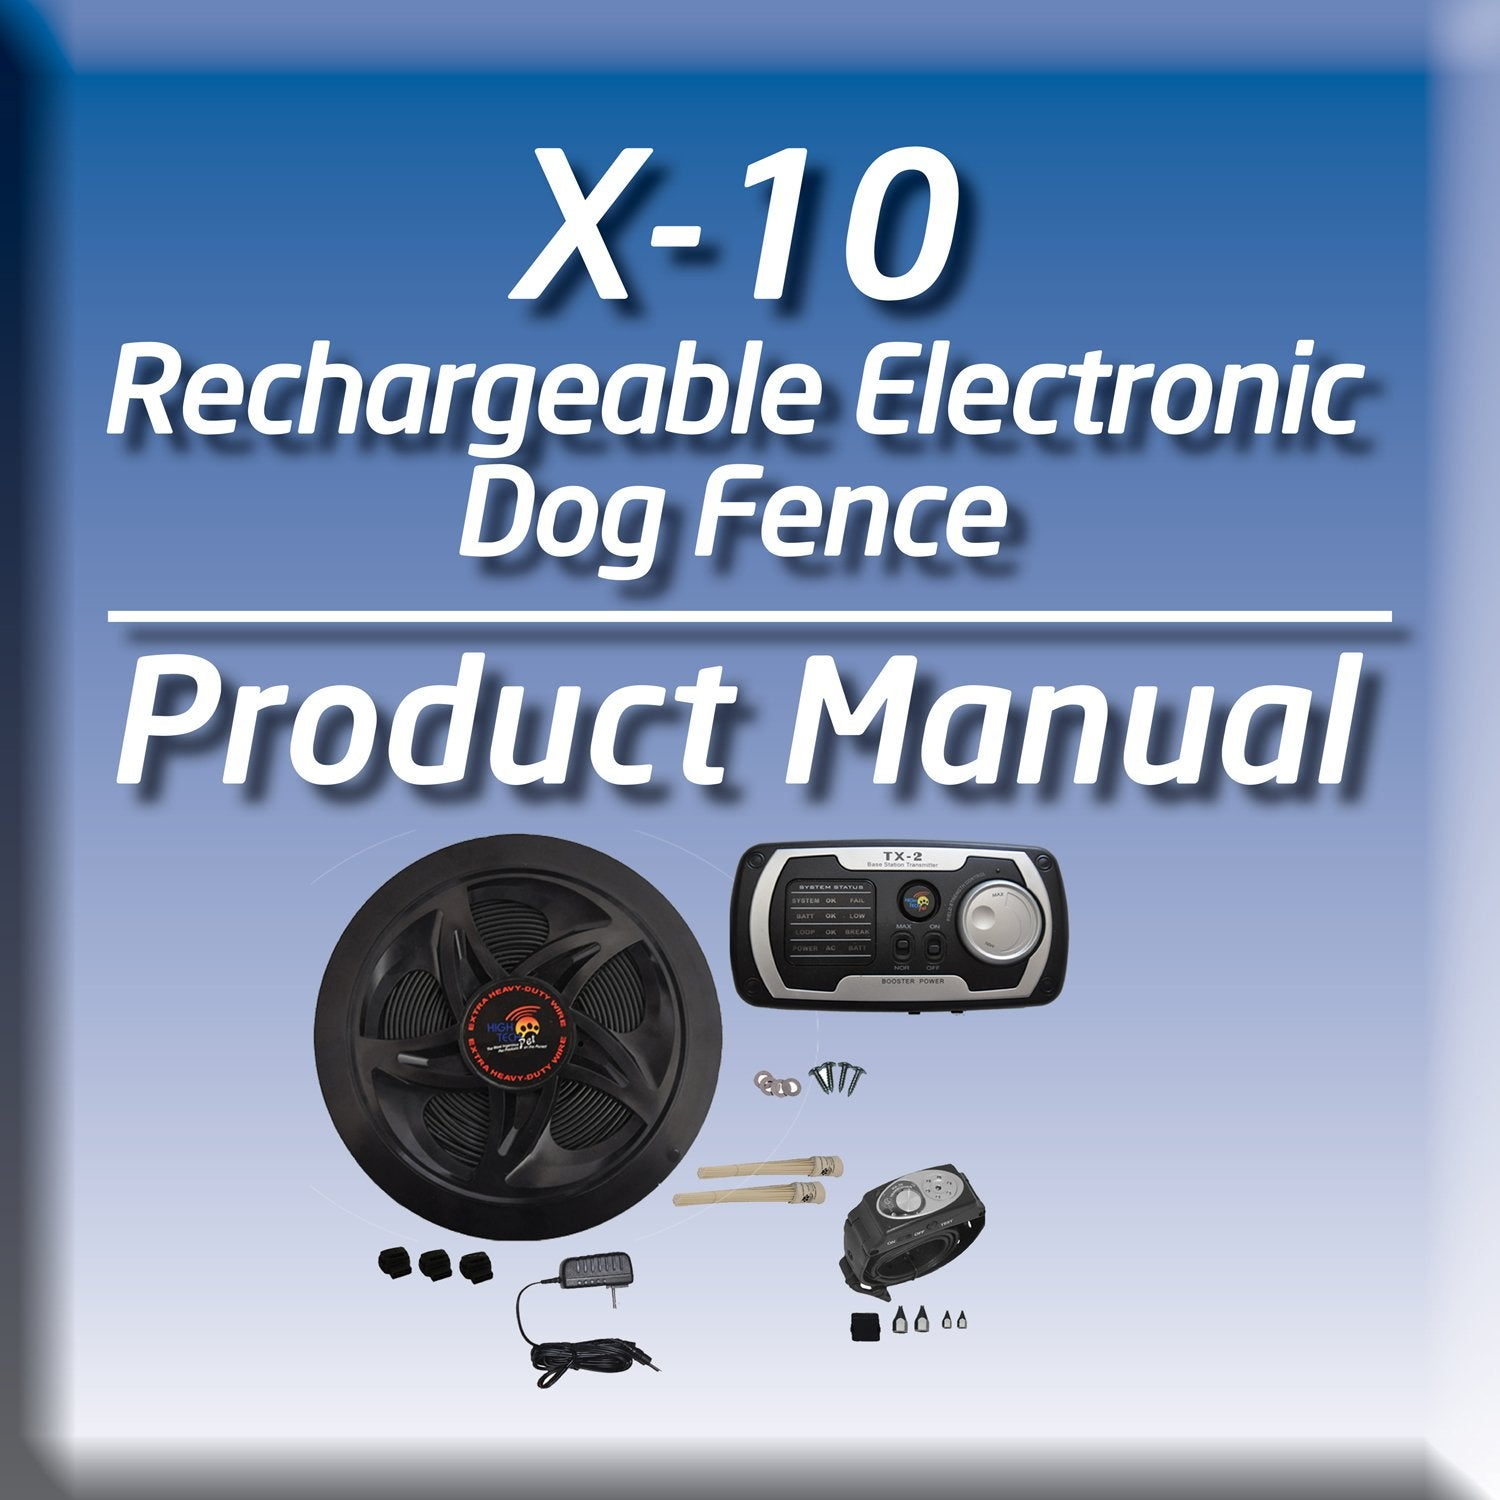 Having trouble with your electric fence? Try our invisible dog fence manual